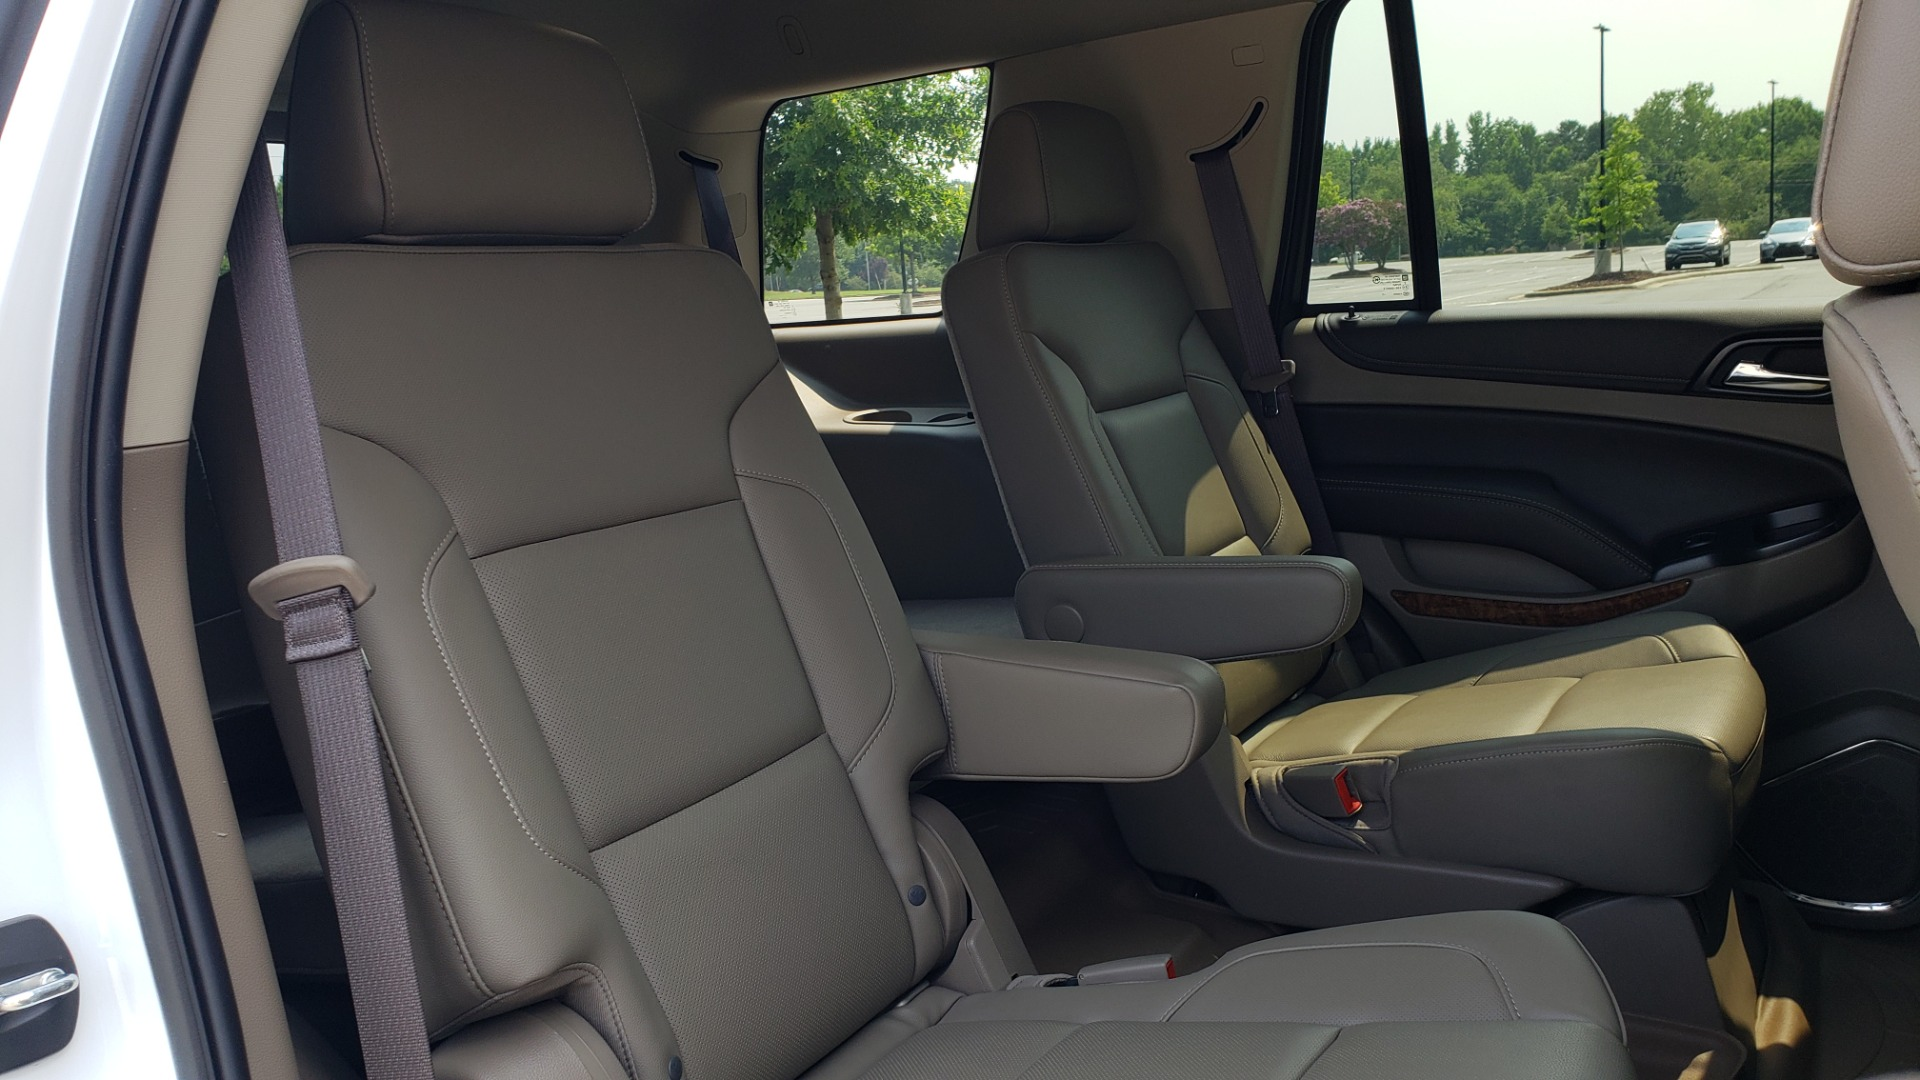 Used 2018 Chevrolet TAHOE PREMIER 4WD / NAV / SUNROOF / BOSE / 3-ROW / HUD / REARVIEW for sale $63,995 at Formula Imports in Charlotte NC 28227 76